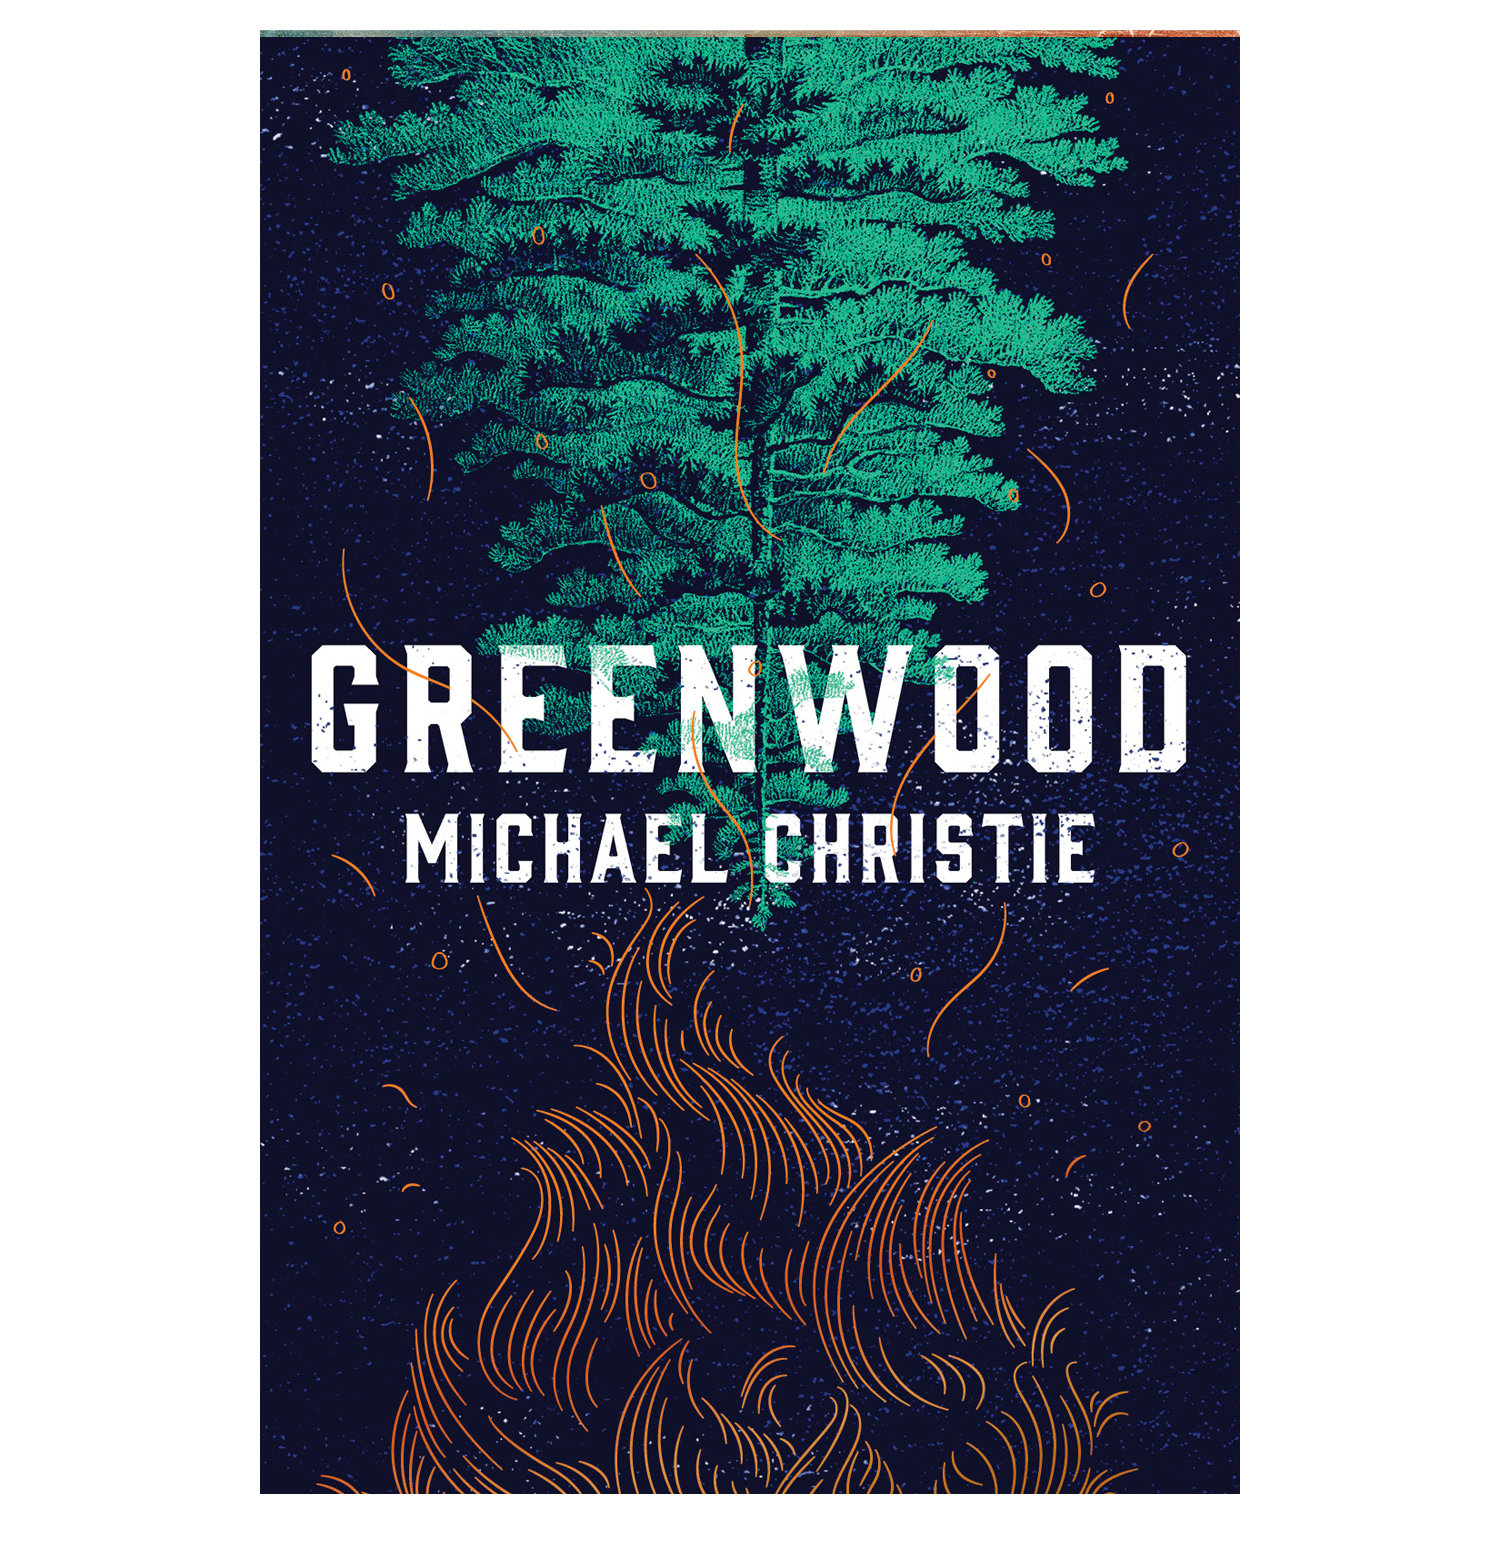 GREENWOOD cover for website.png